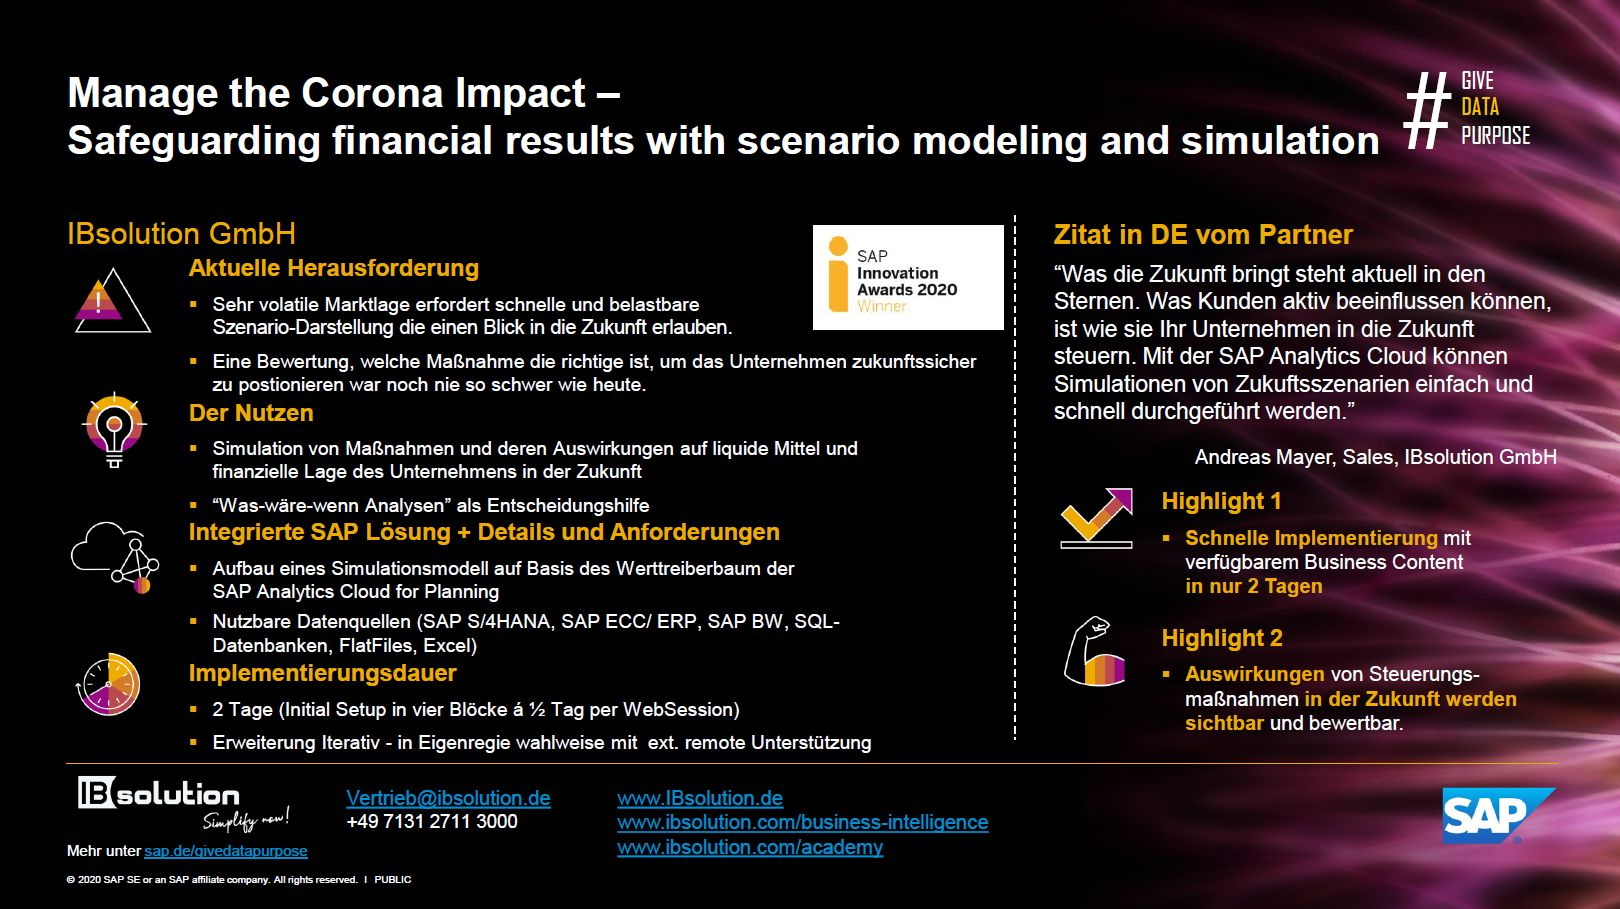 IBsolution Cashflow Scenario Modelling and Simulation